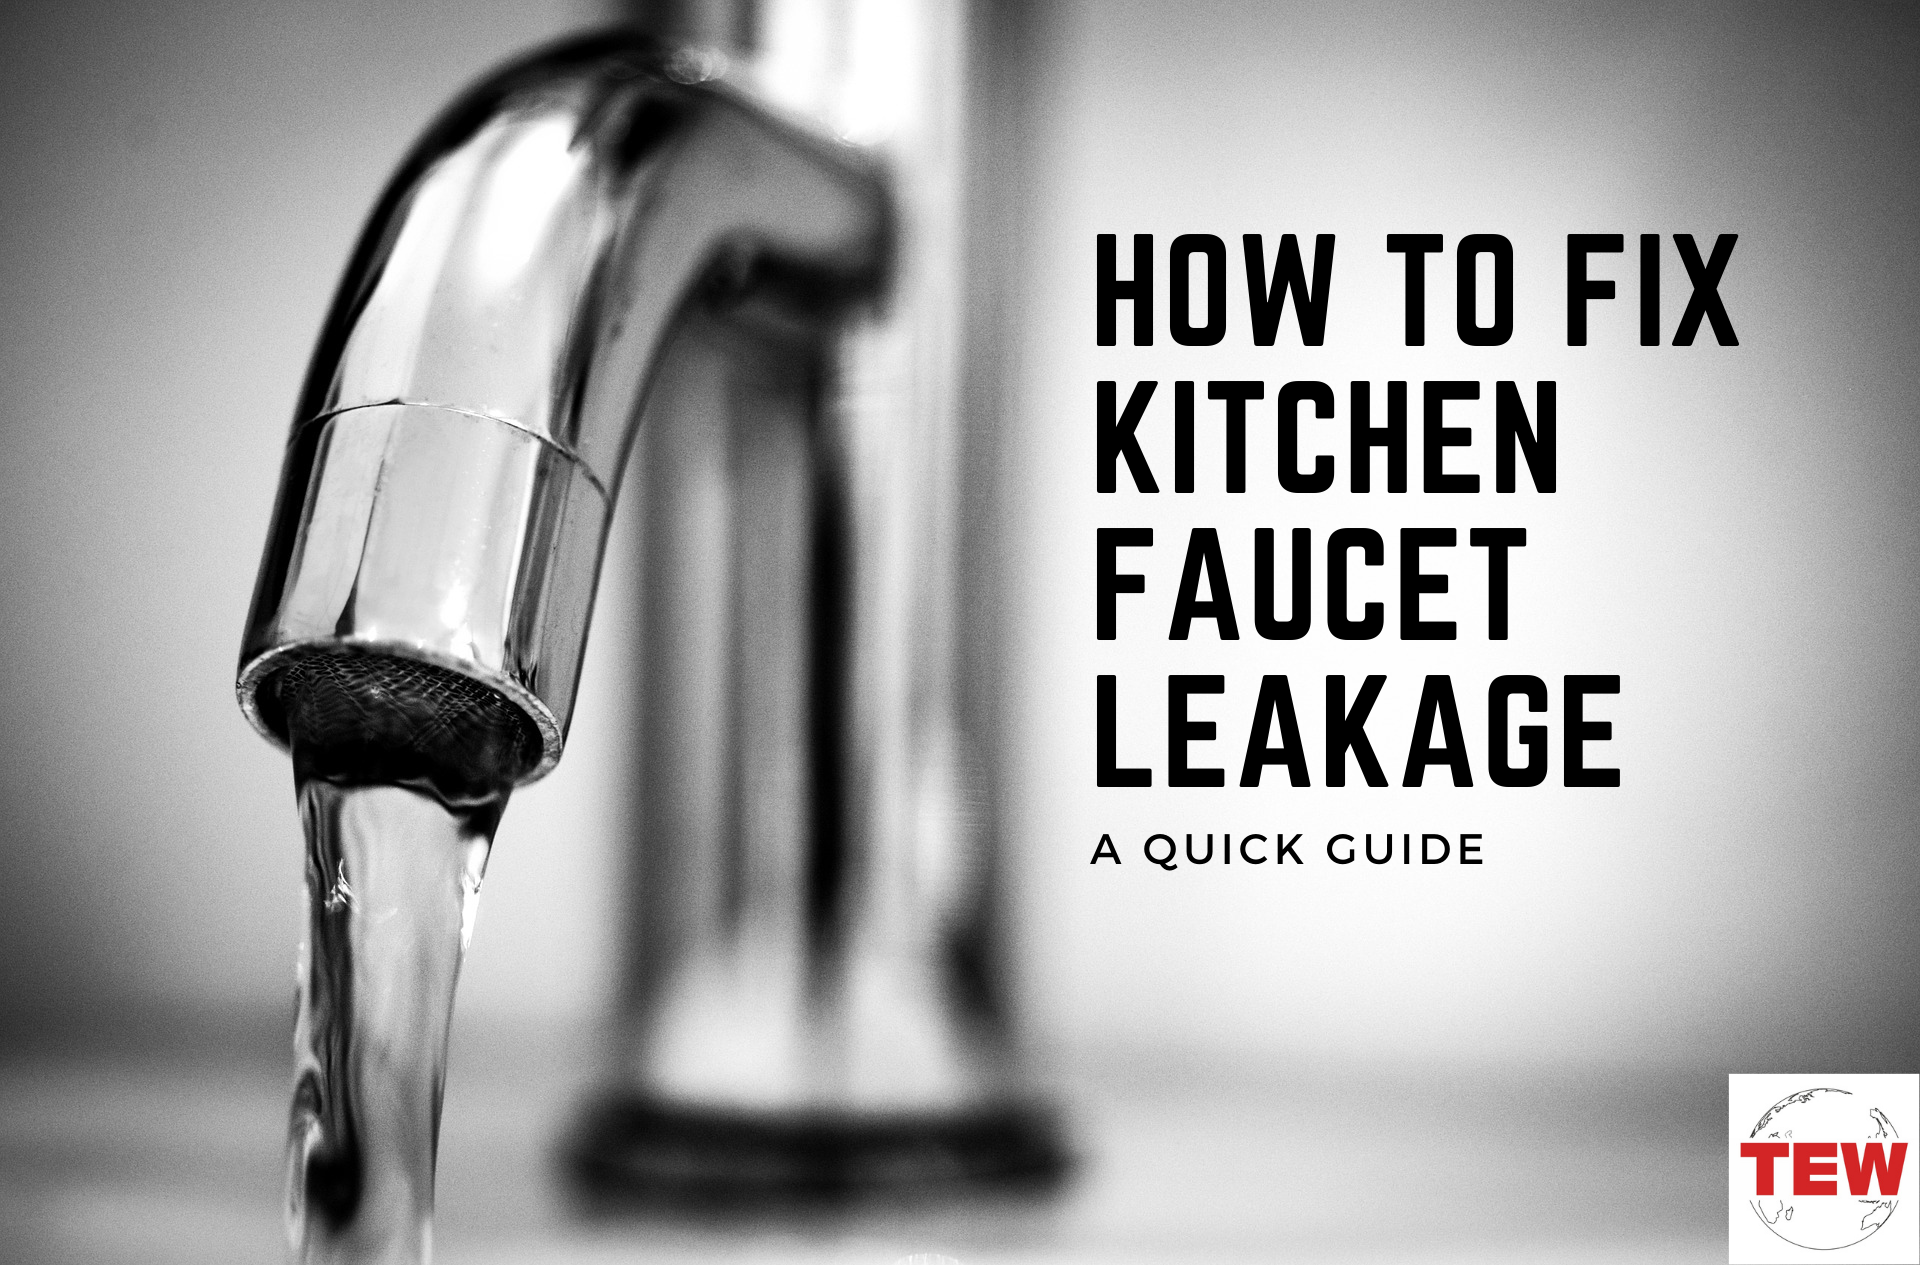 How to Fix Kitchen Faucet Leakage – A Quick Guide